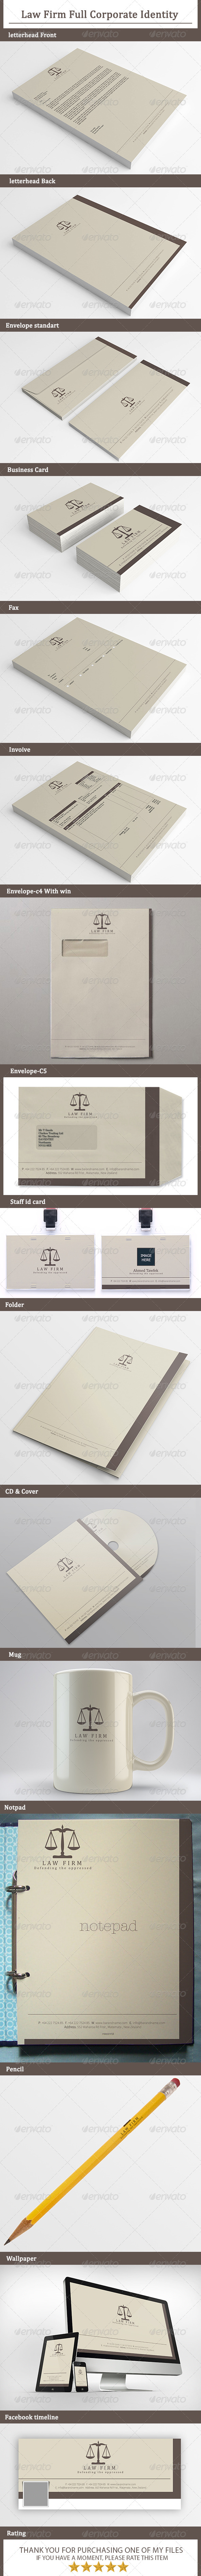 GraphicRiver Law Firm Full Corporate Identity 7554794